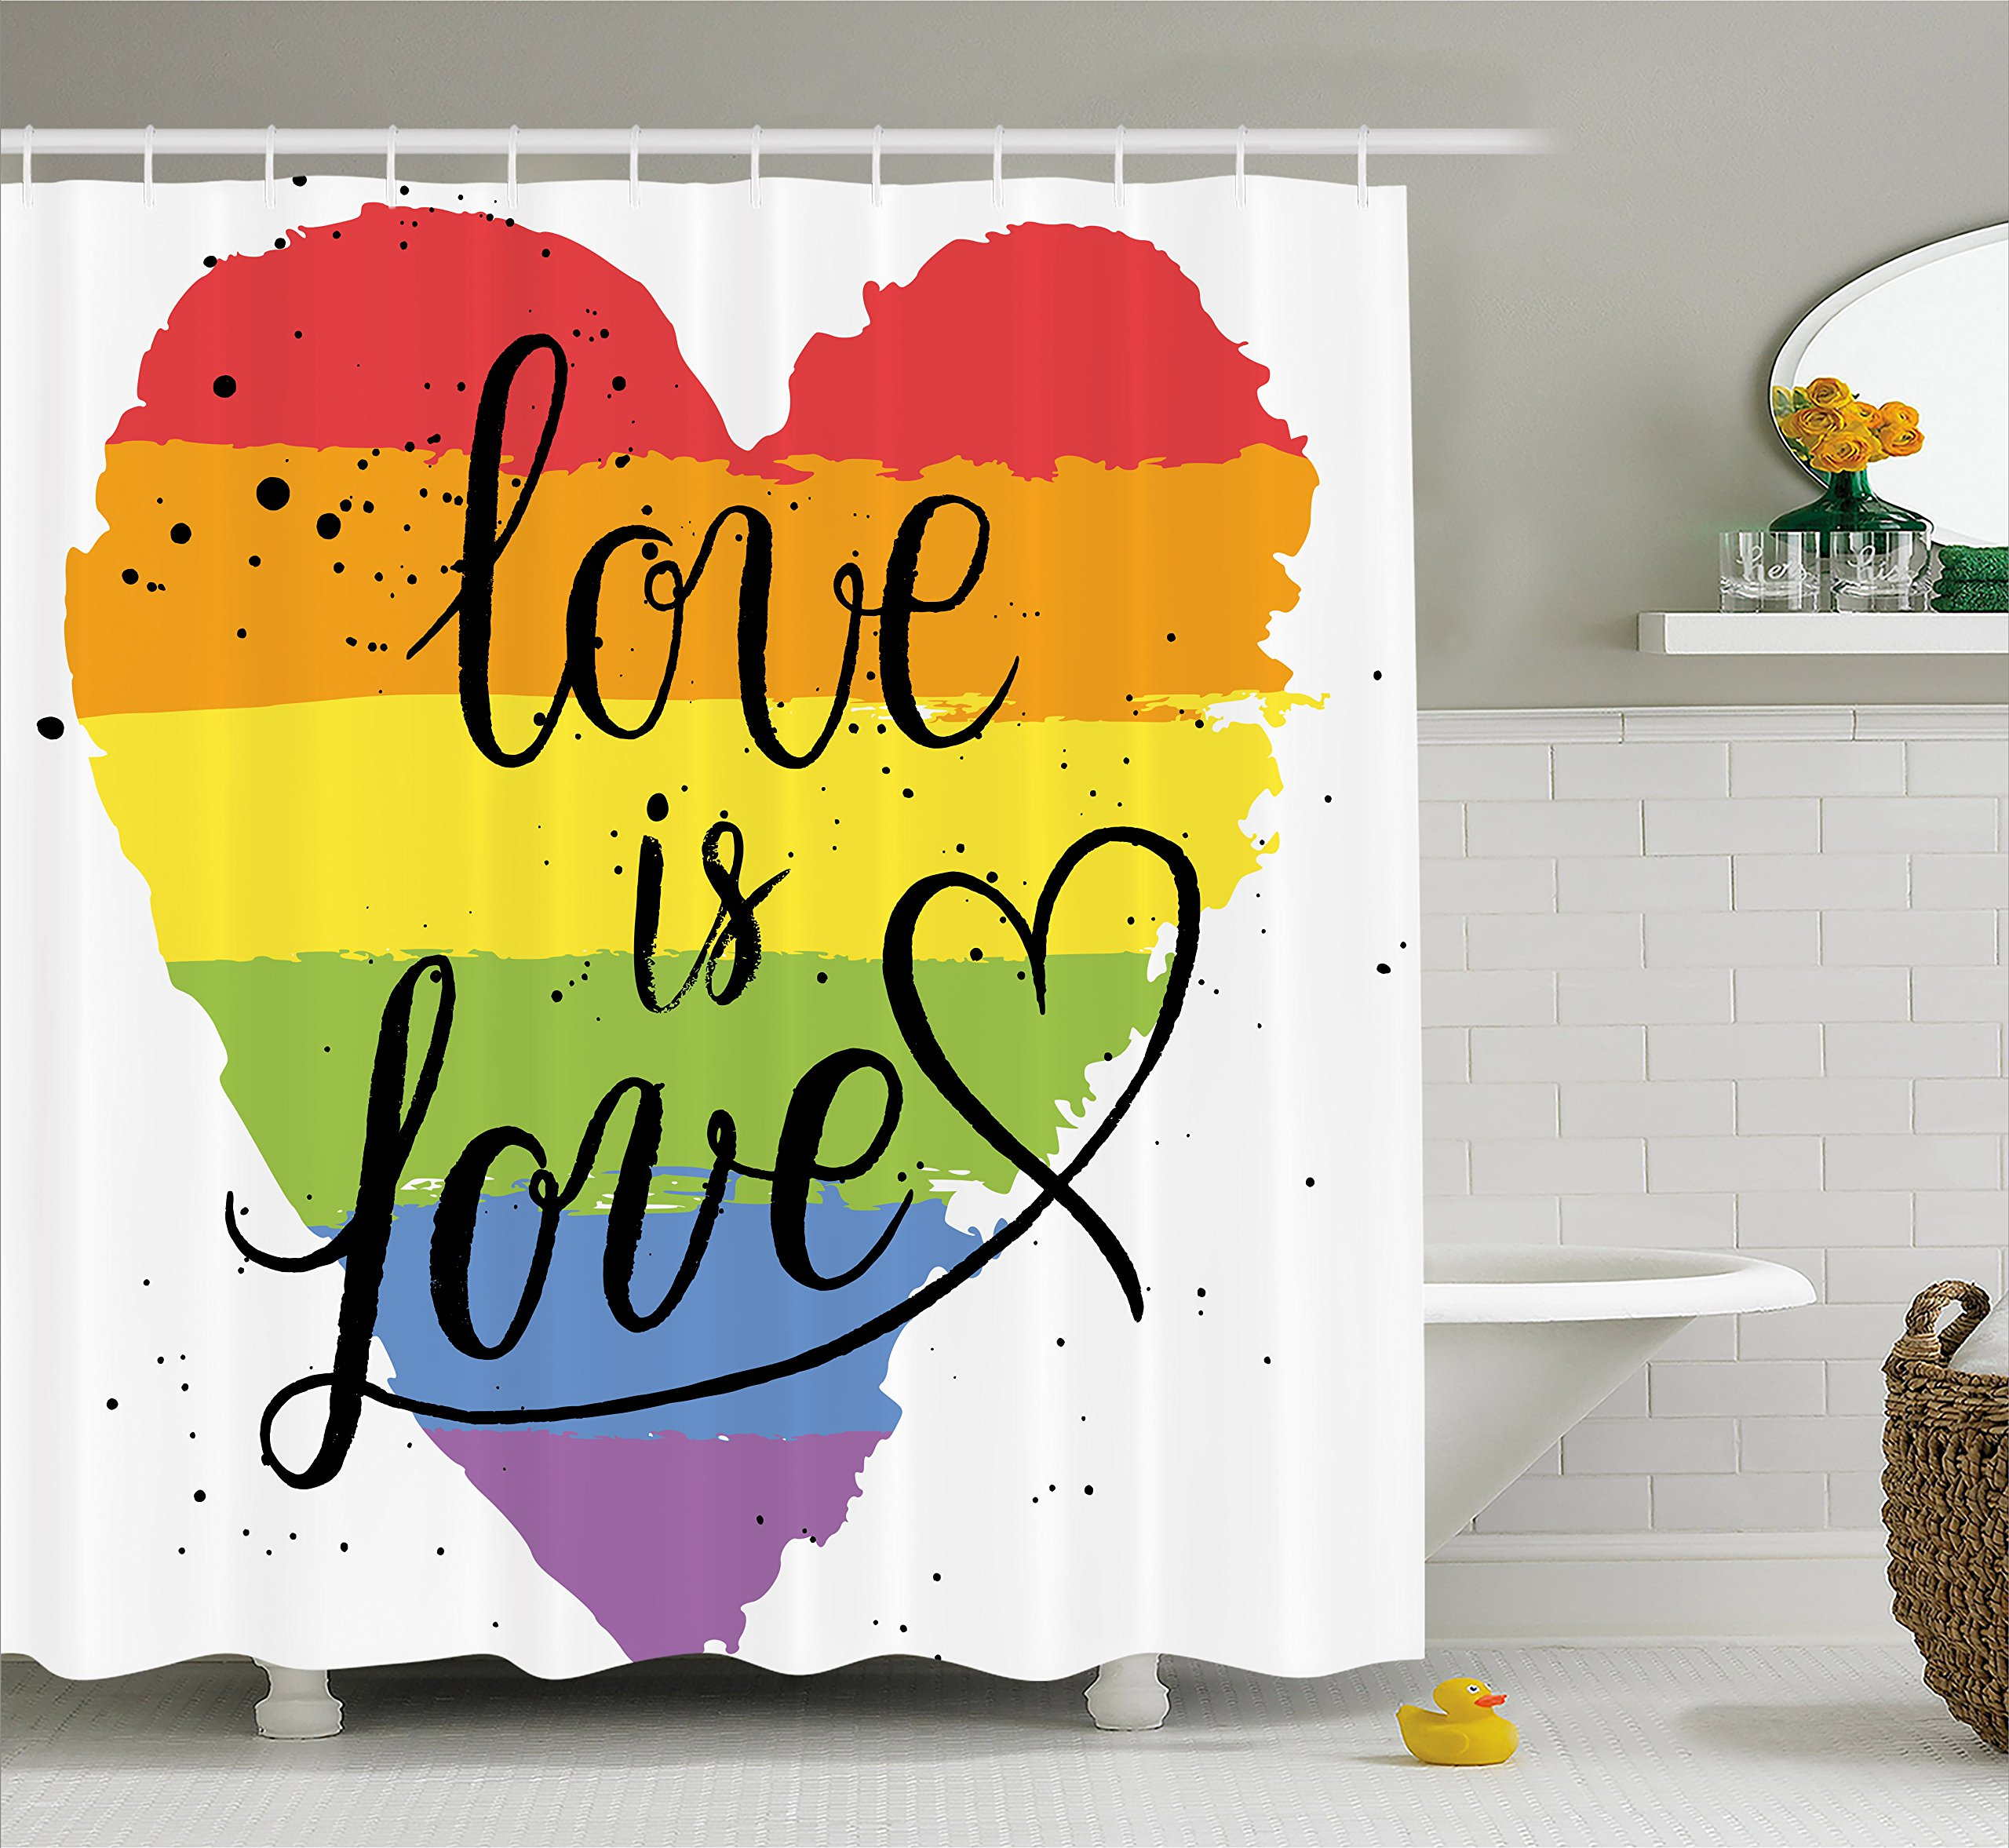 Ambesonne Pride Decorations Shower Curtain, LGBT Gay Lesbian Parade Love Valentines Inspiring Hand Writing Paint Strokes Artistic, Fabric Bathroom Decor Set with Hooks, 70 Inches, Multicolor